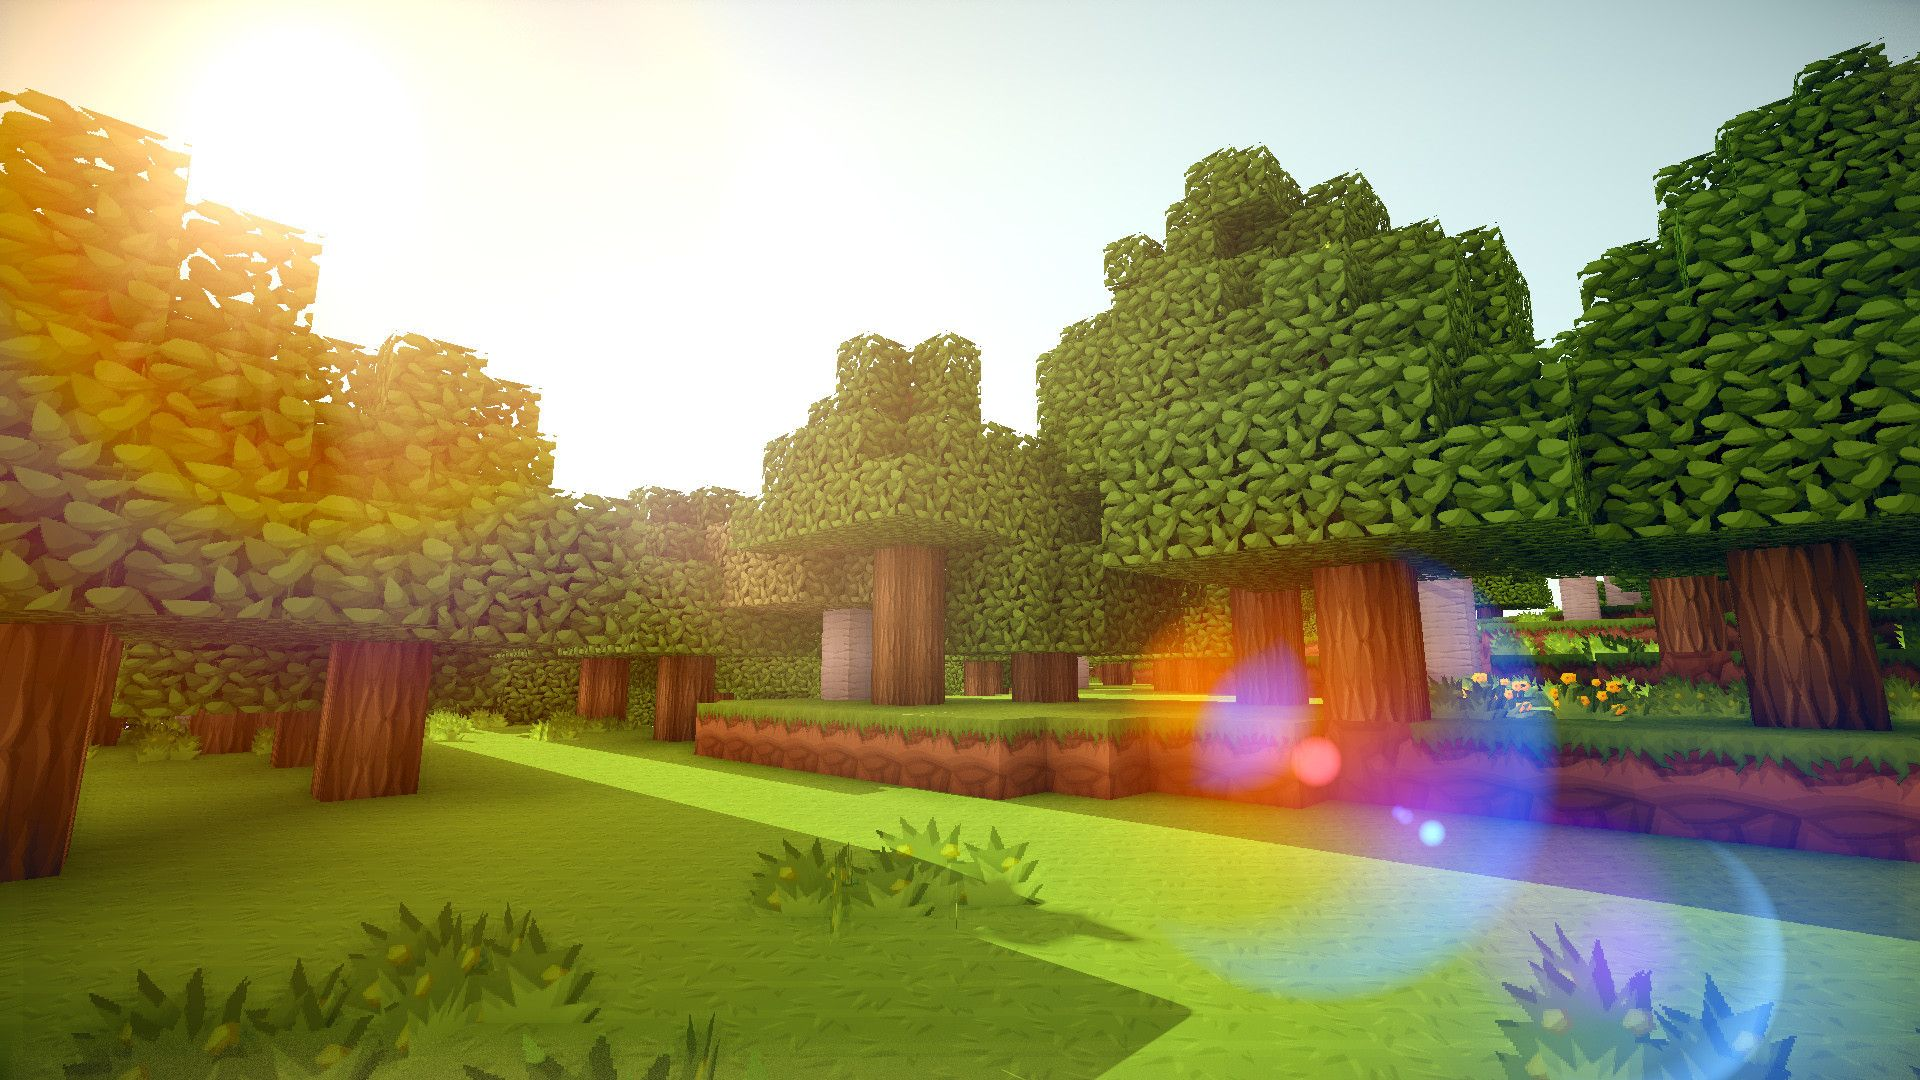 75 Minecraft Background Wallpapers On Wallpaperplay With Images